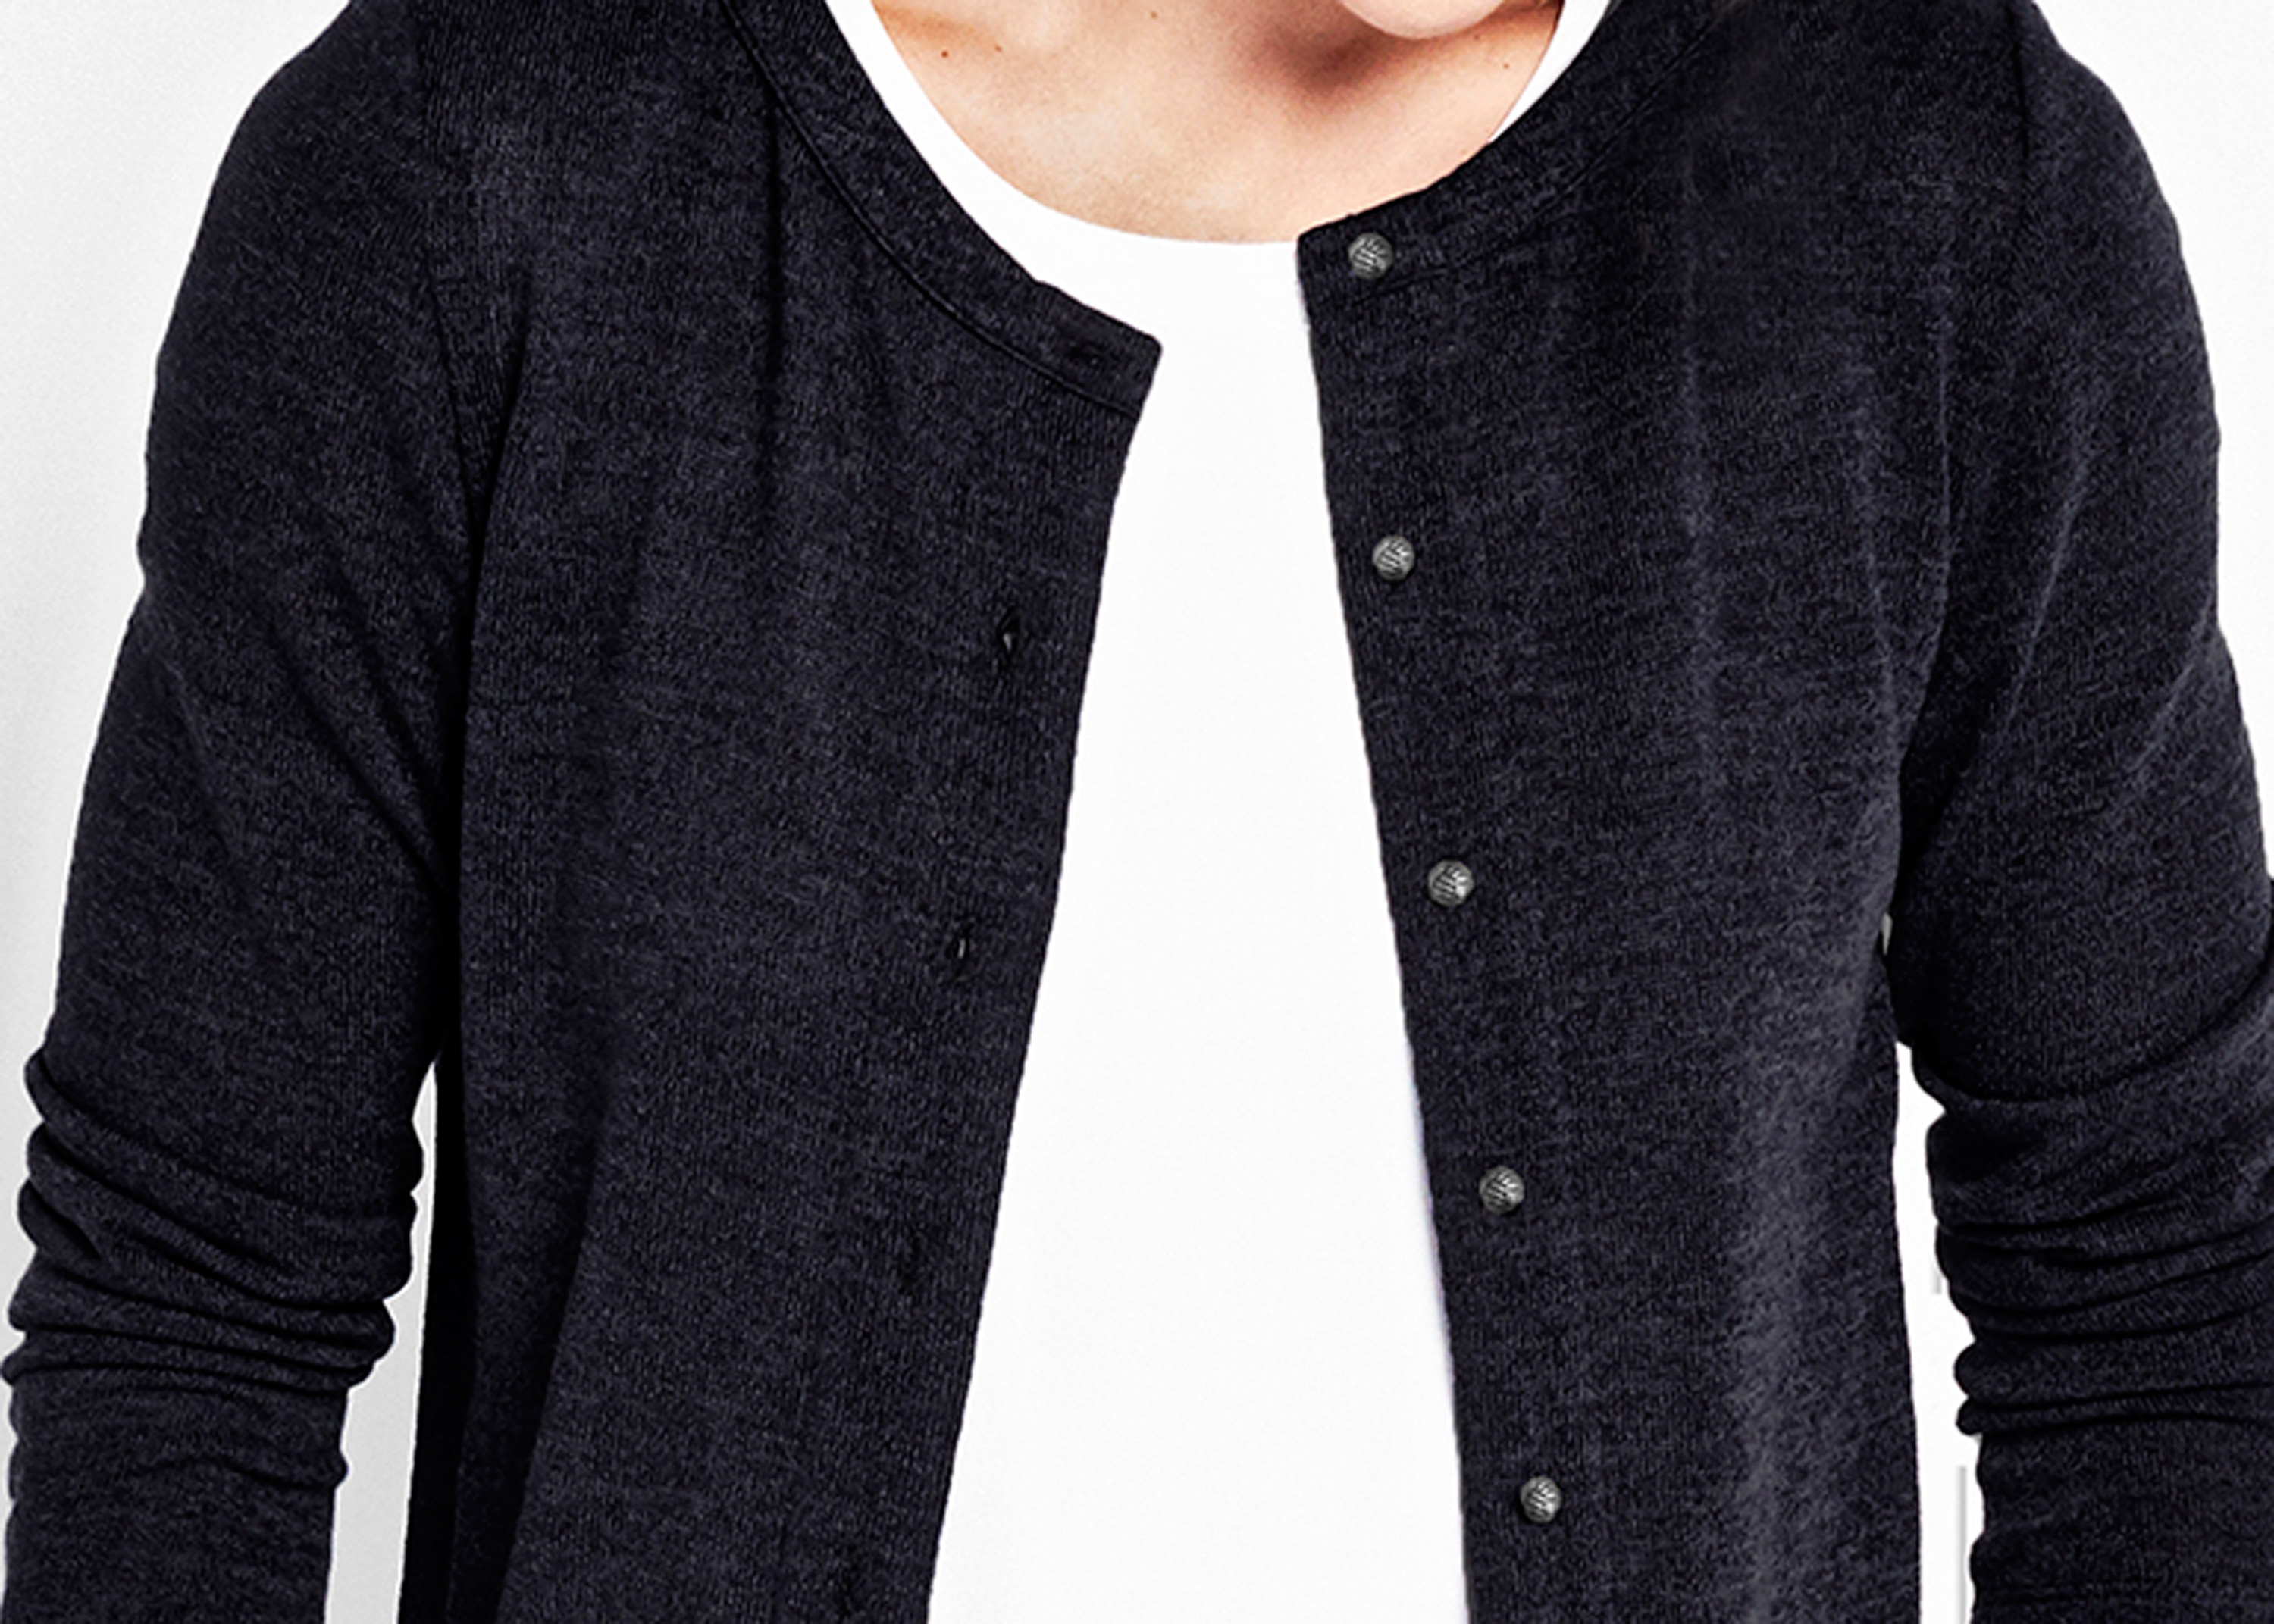 Of Mercer | Black Whitney Cardigan | Detail Shot